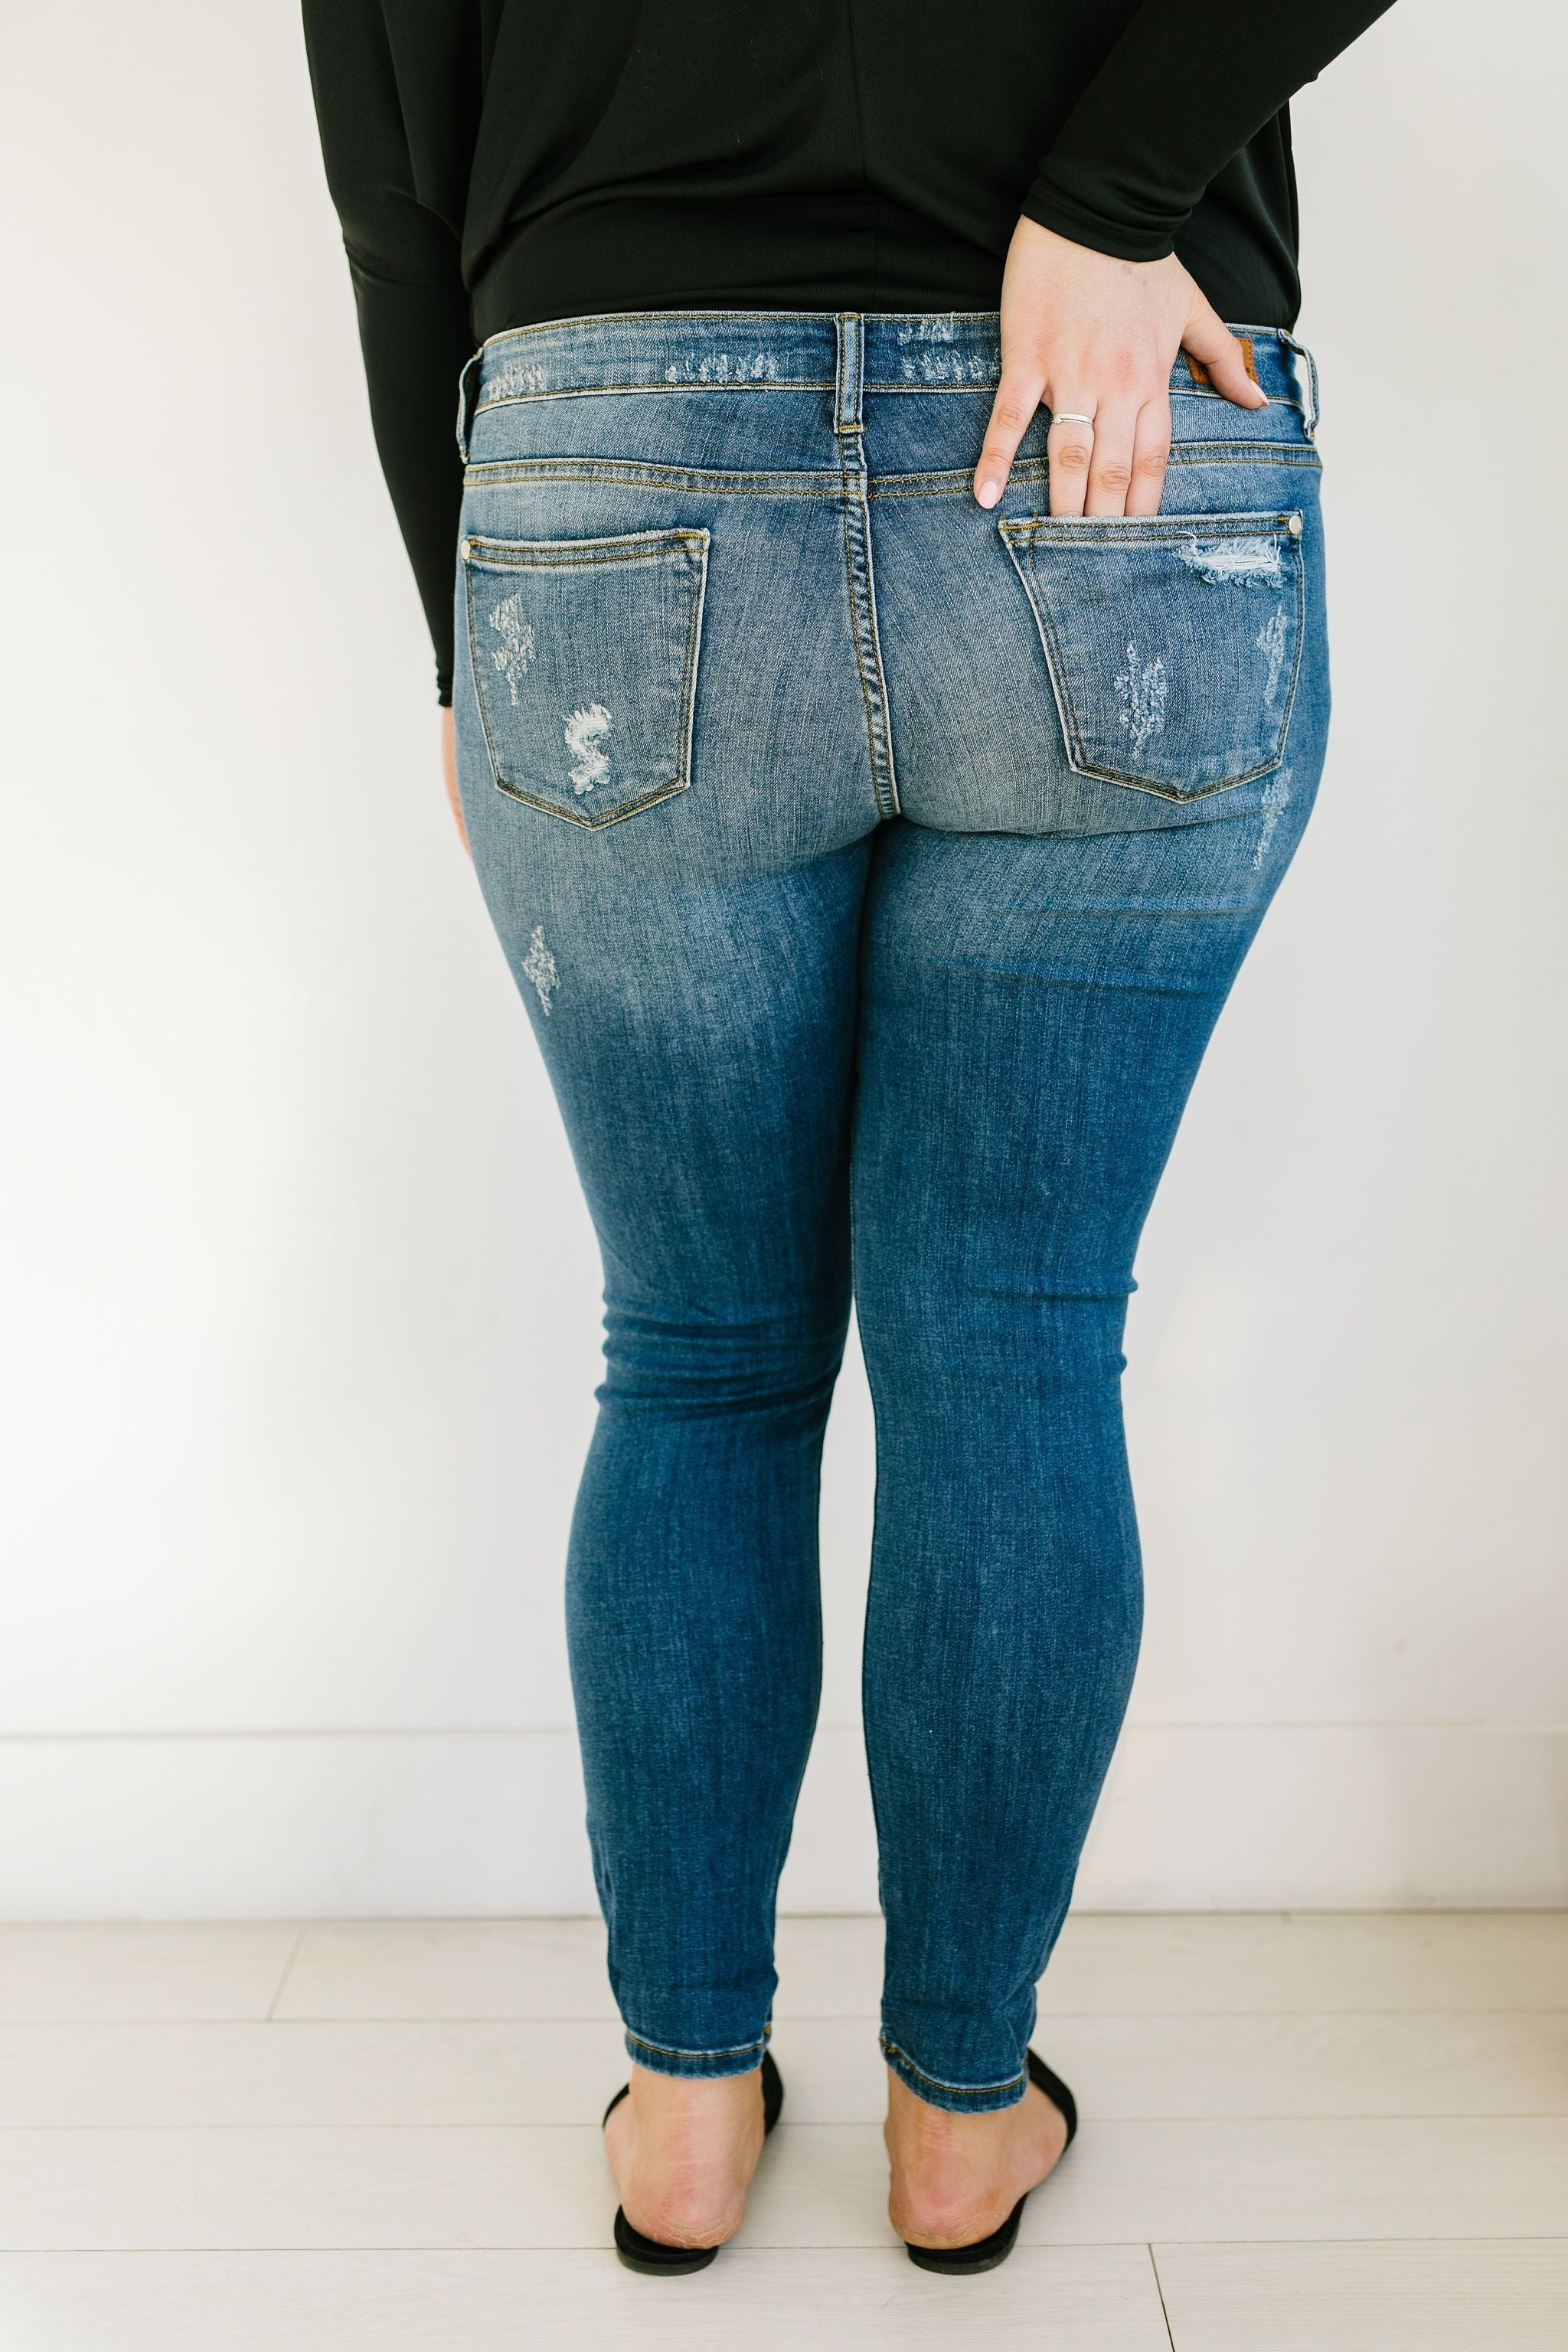 Judy Blue Let The Wild Thing Out Jeans